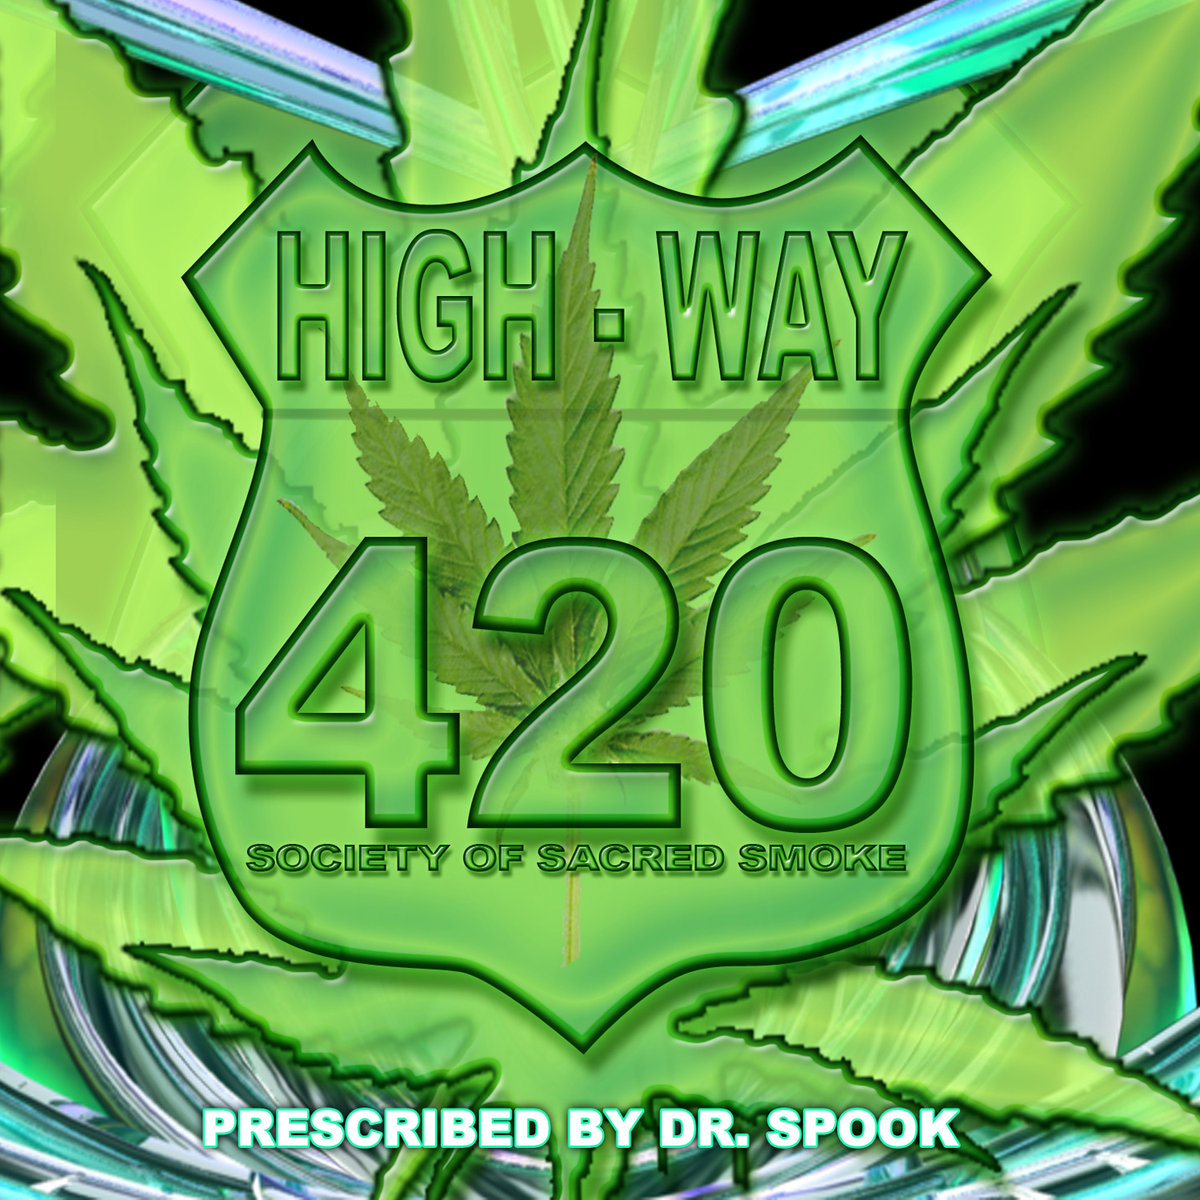 Rastaliens - Fat Flip @ 'Various Artists - High-Way 420: Society Of Sacred Smoke (Prescribed by Dr. Spook)' album (electronic, goa)